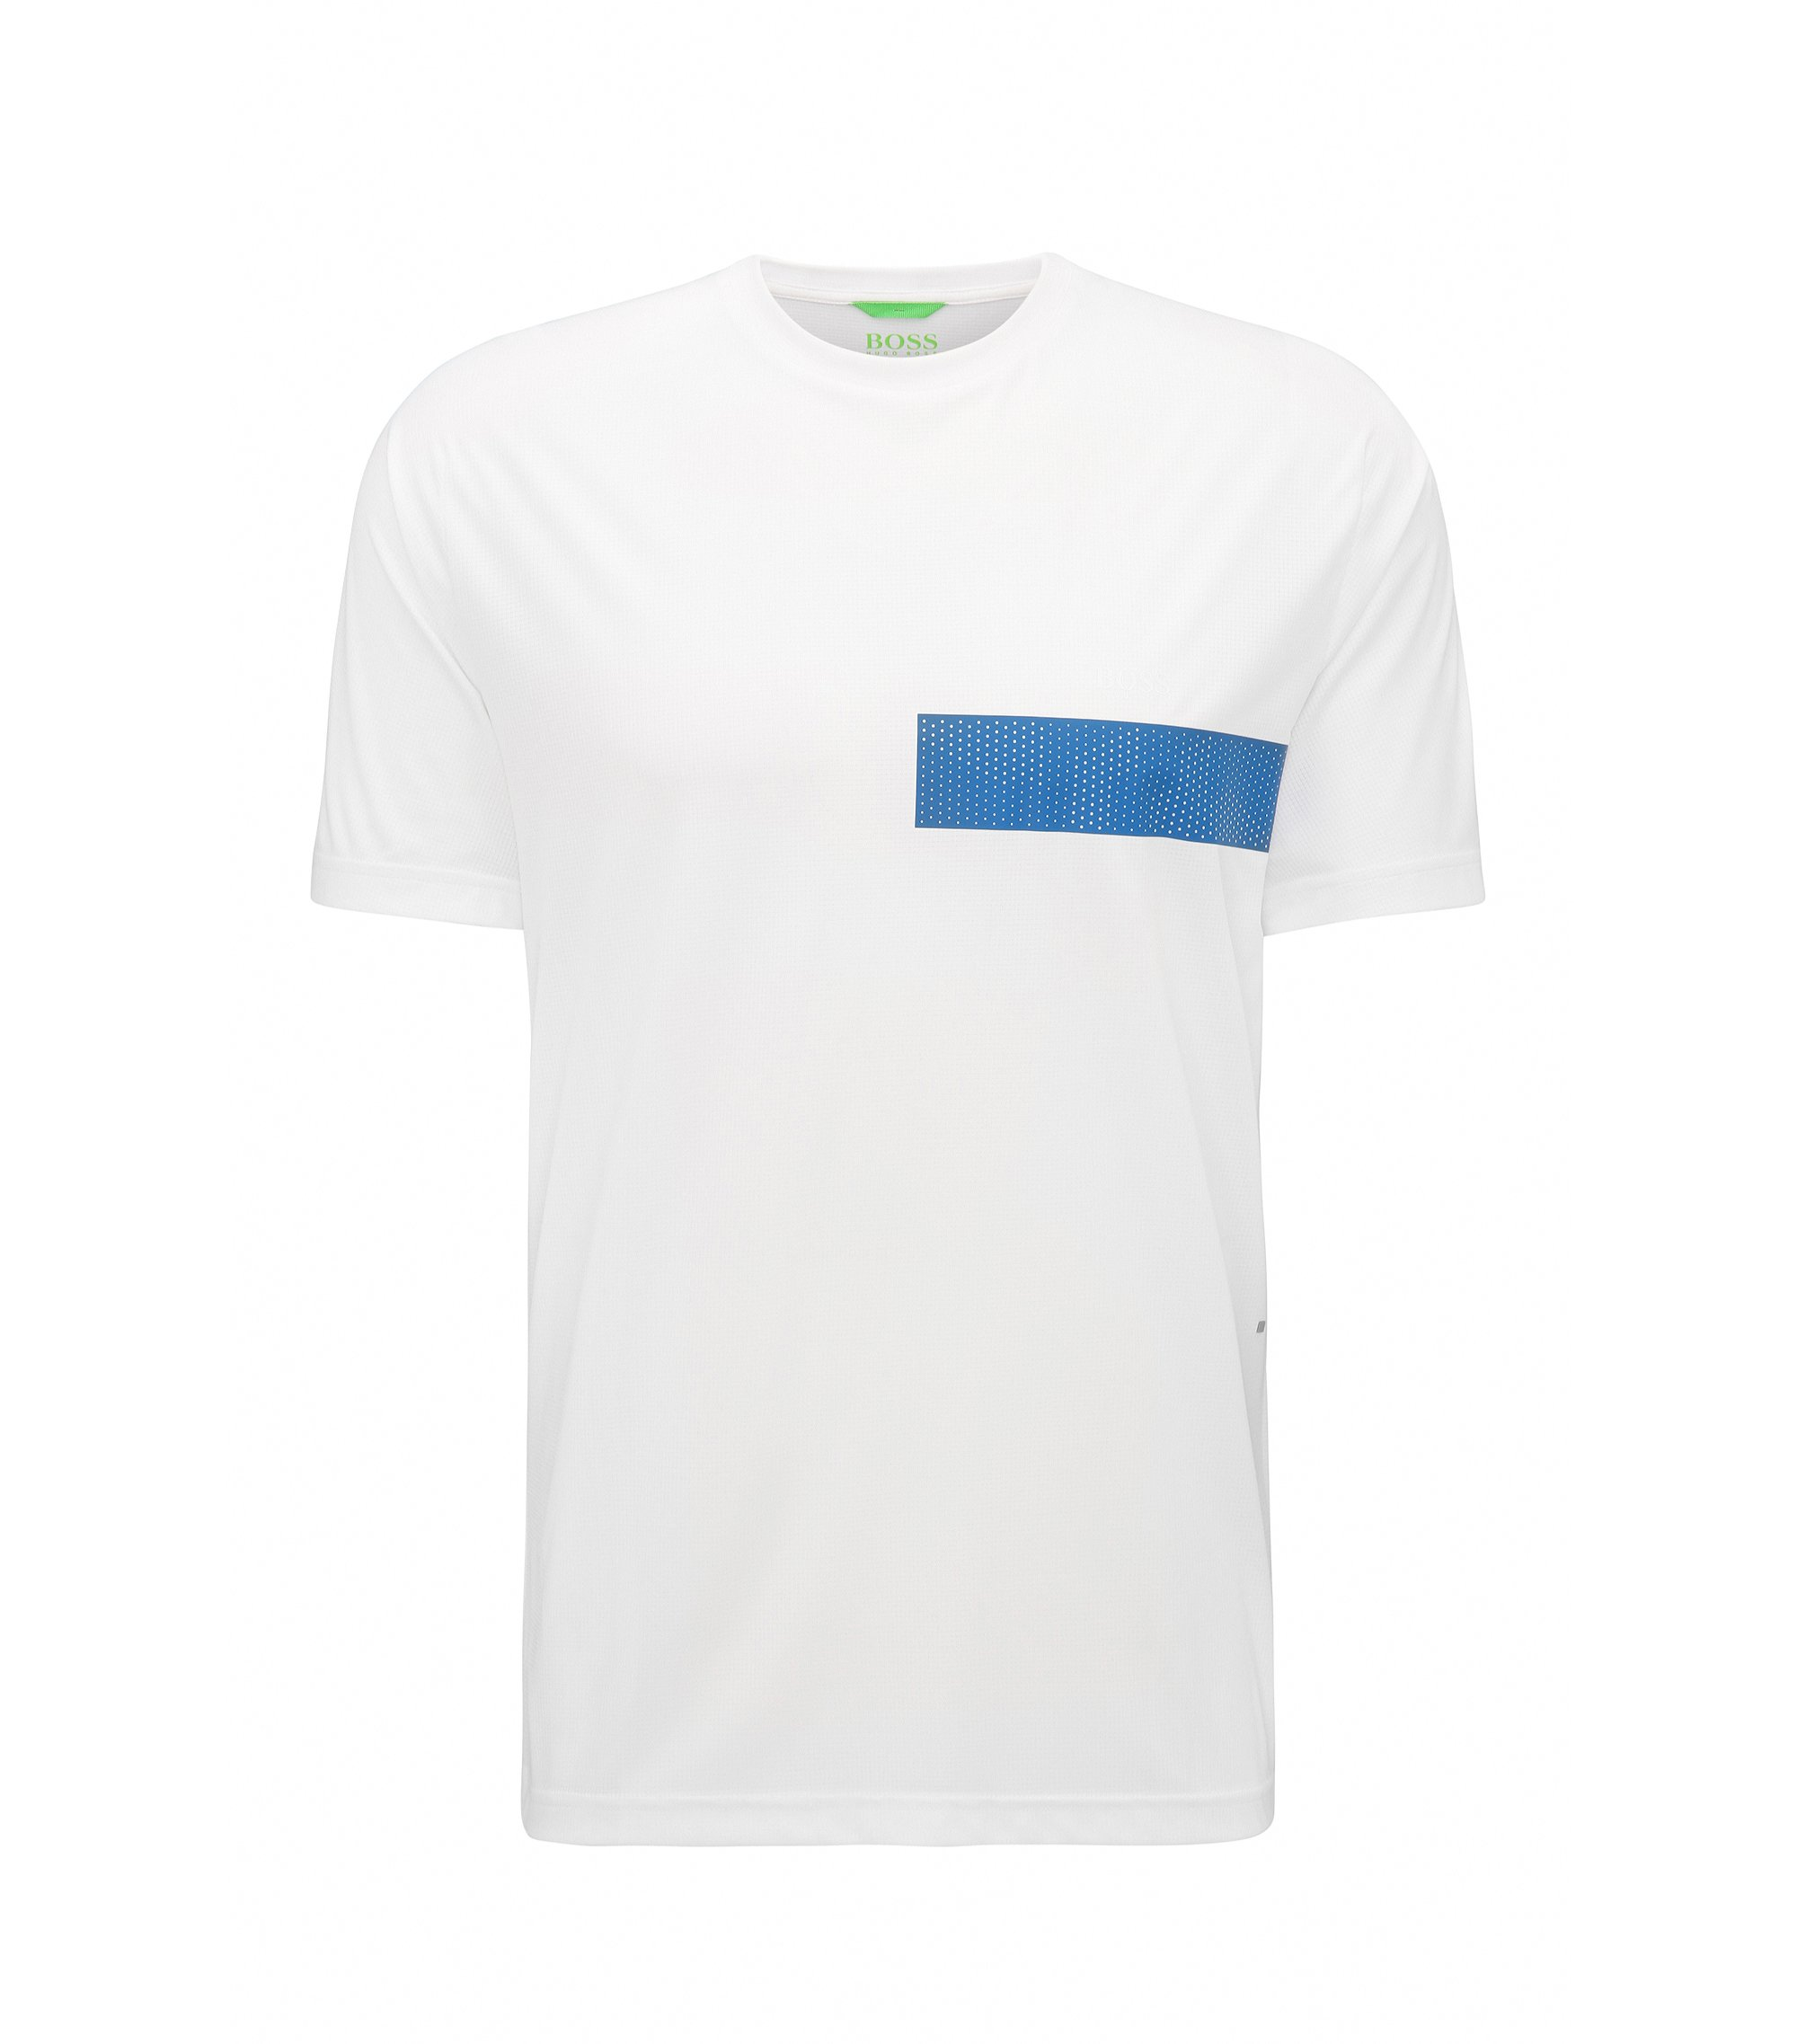 T-shirt Slim Fit en tissu technique, Blanc